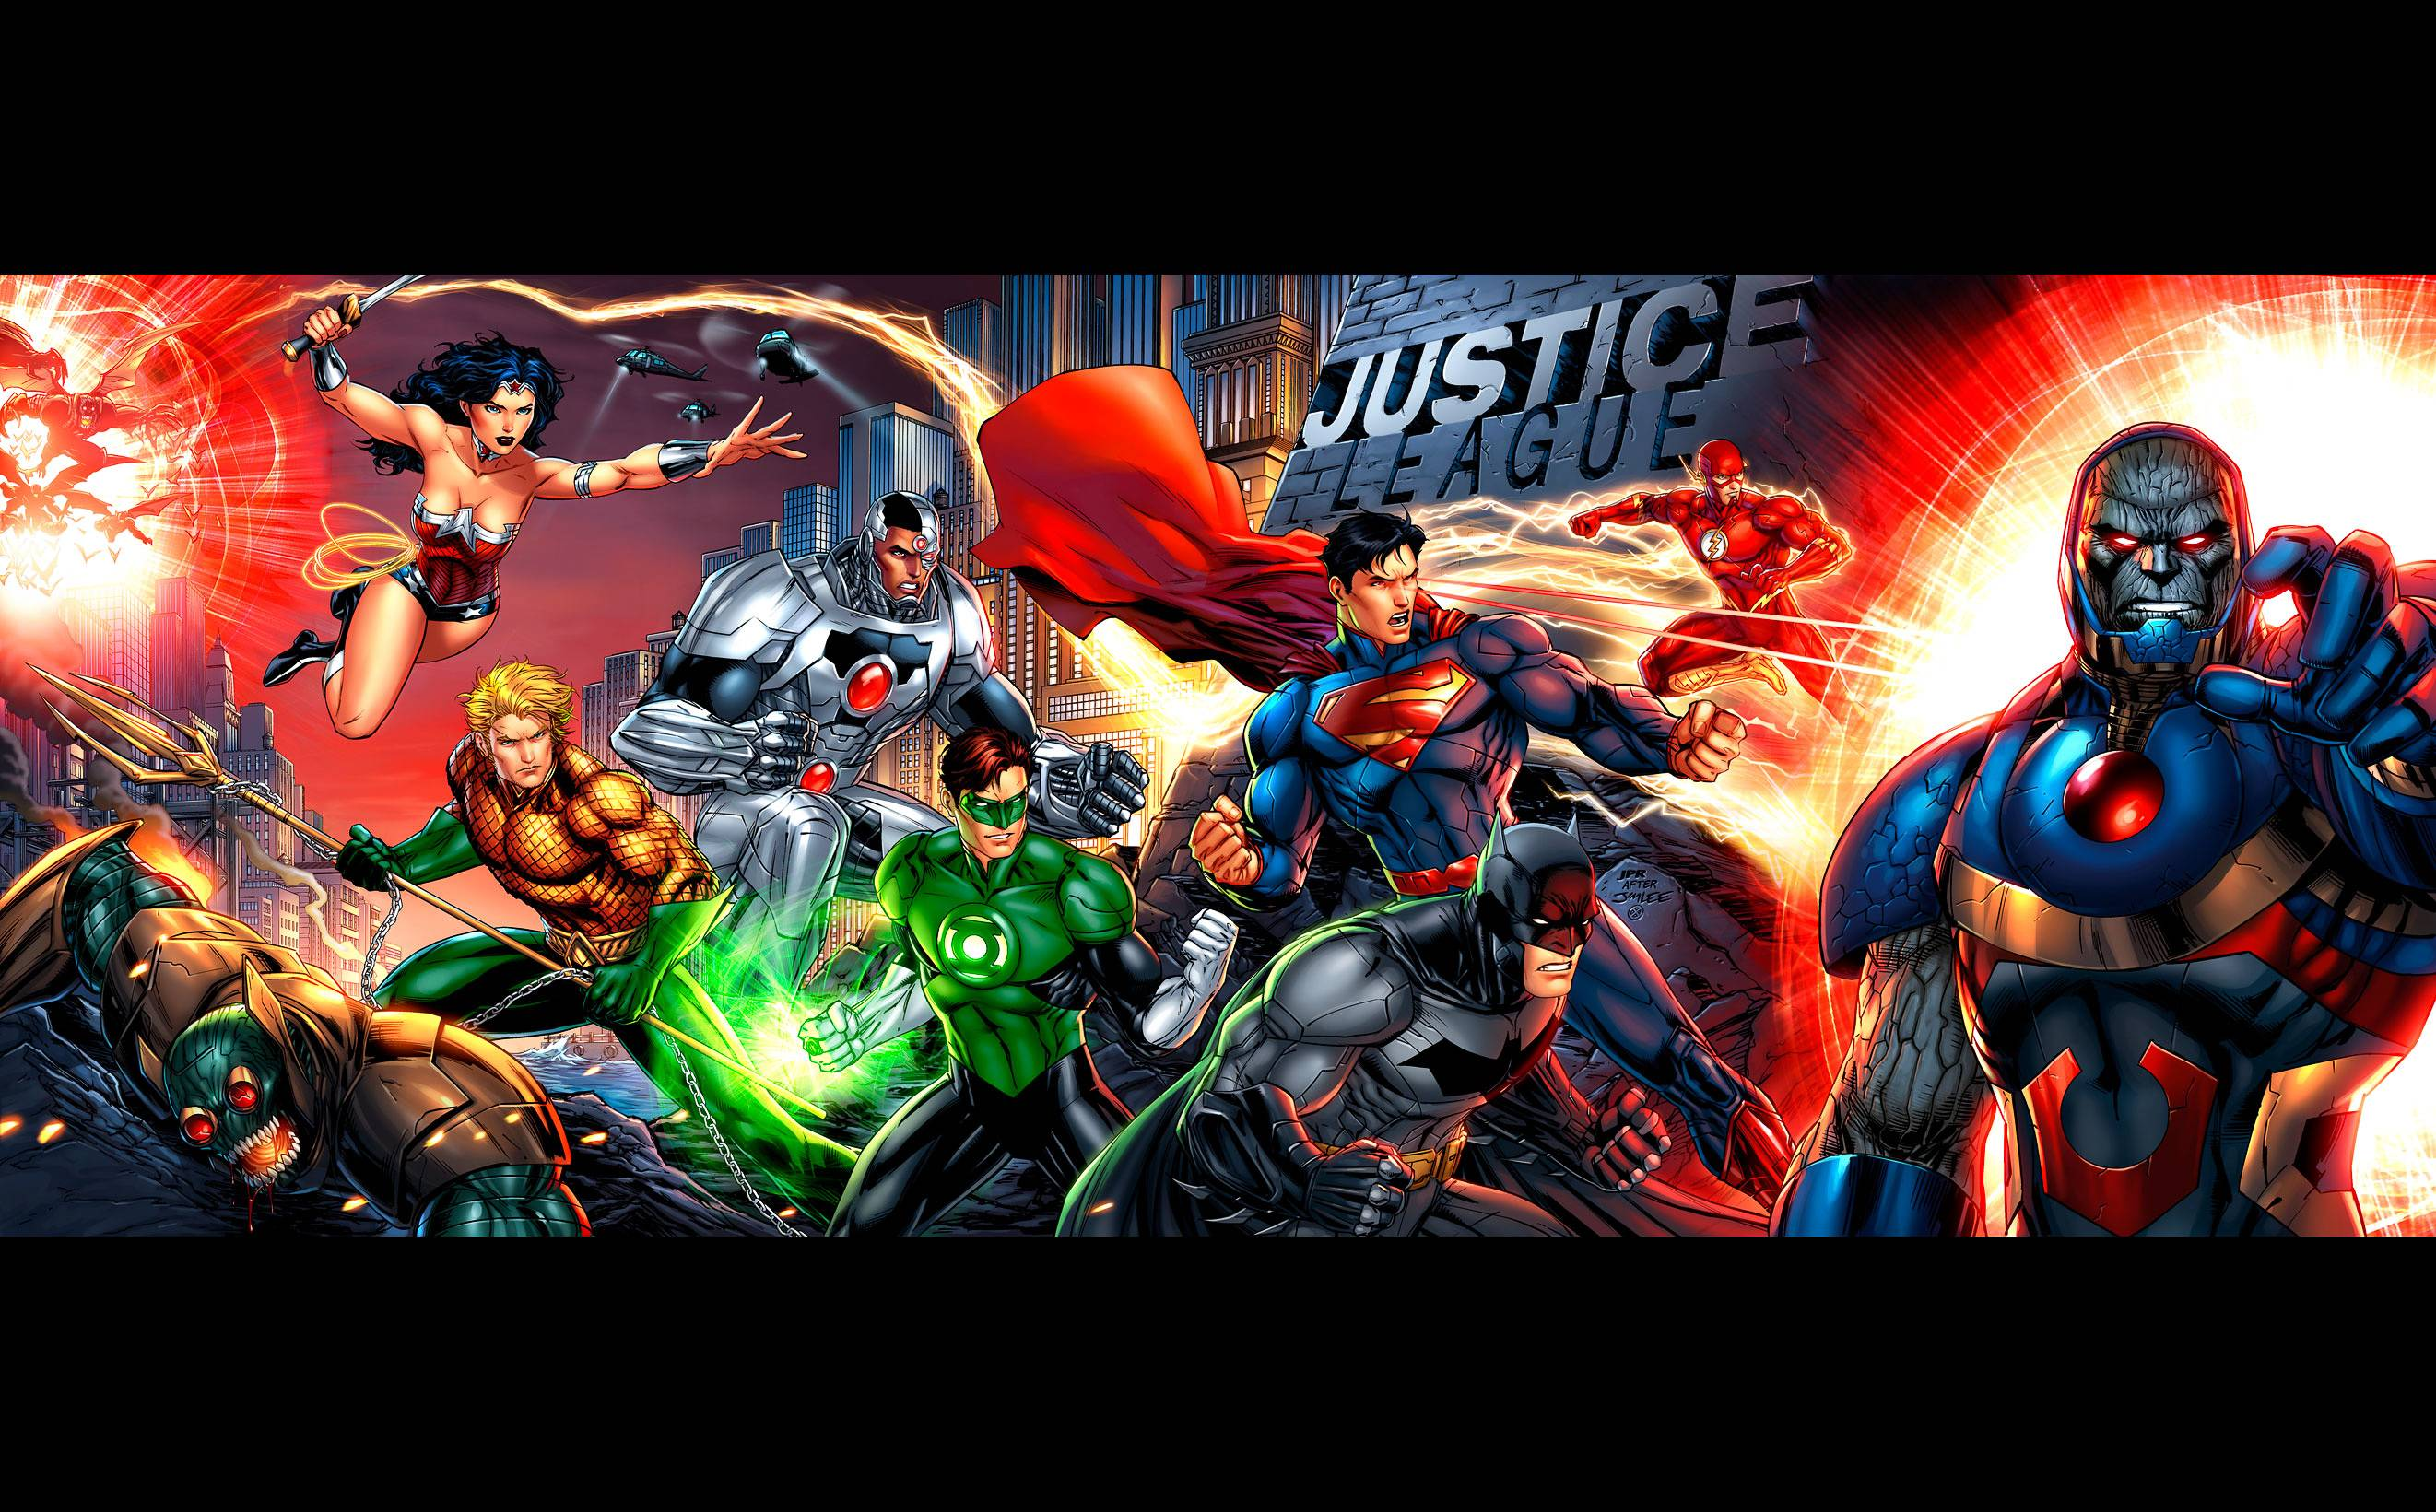 Justice League Wallpapers - Wallpaper Cave